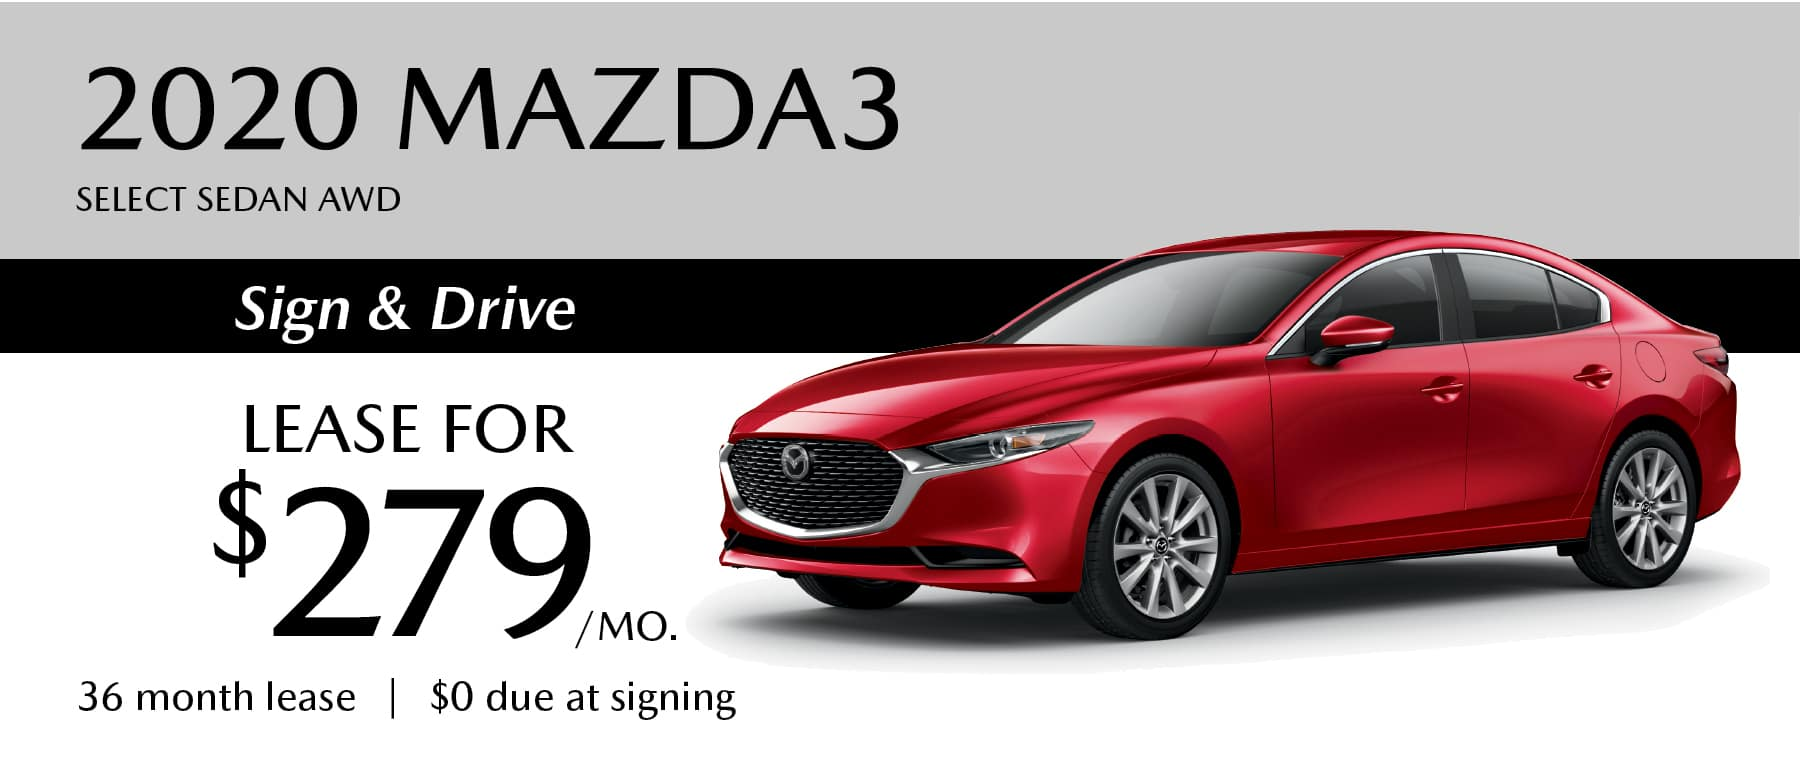 2020 Mazda3 Select Sign and Drive Sales Event with Zero due at signing